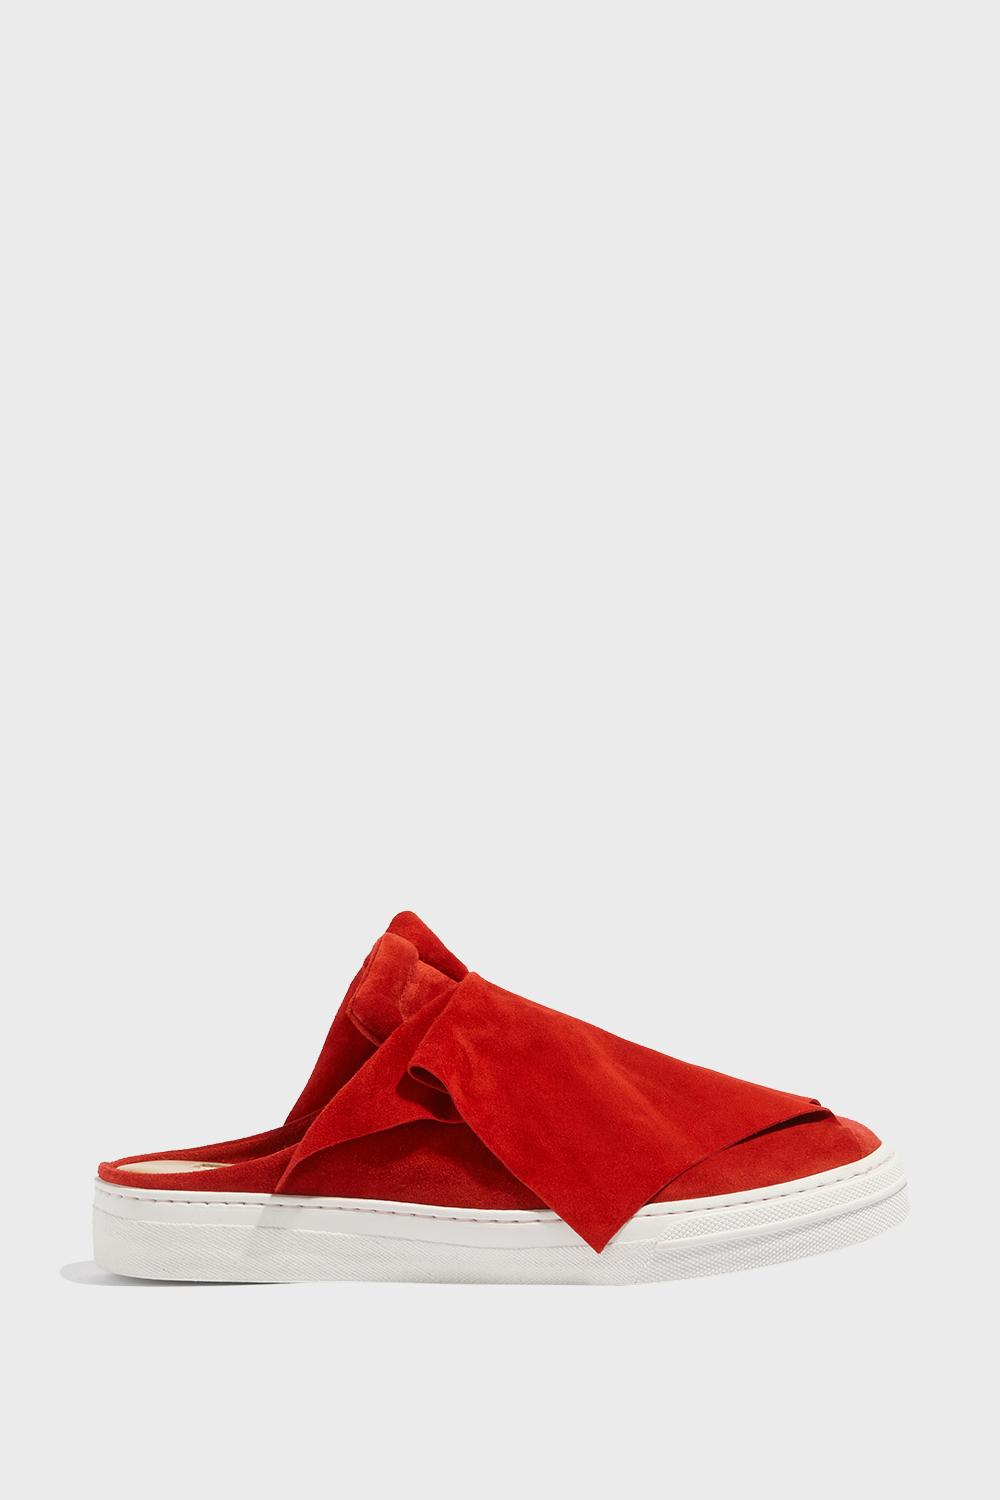 Ports 1961 TWO LAYER SUEDE MULE TRAINERS